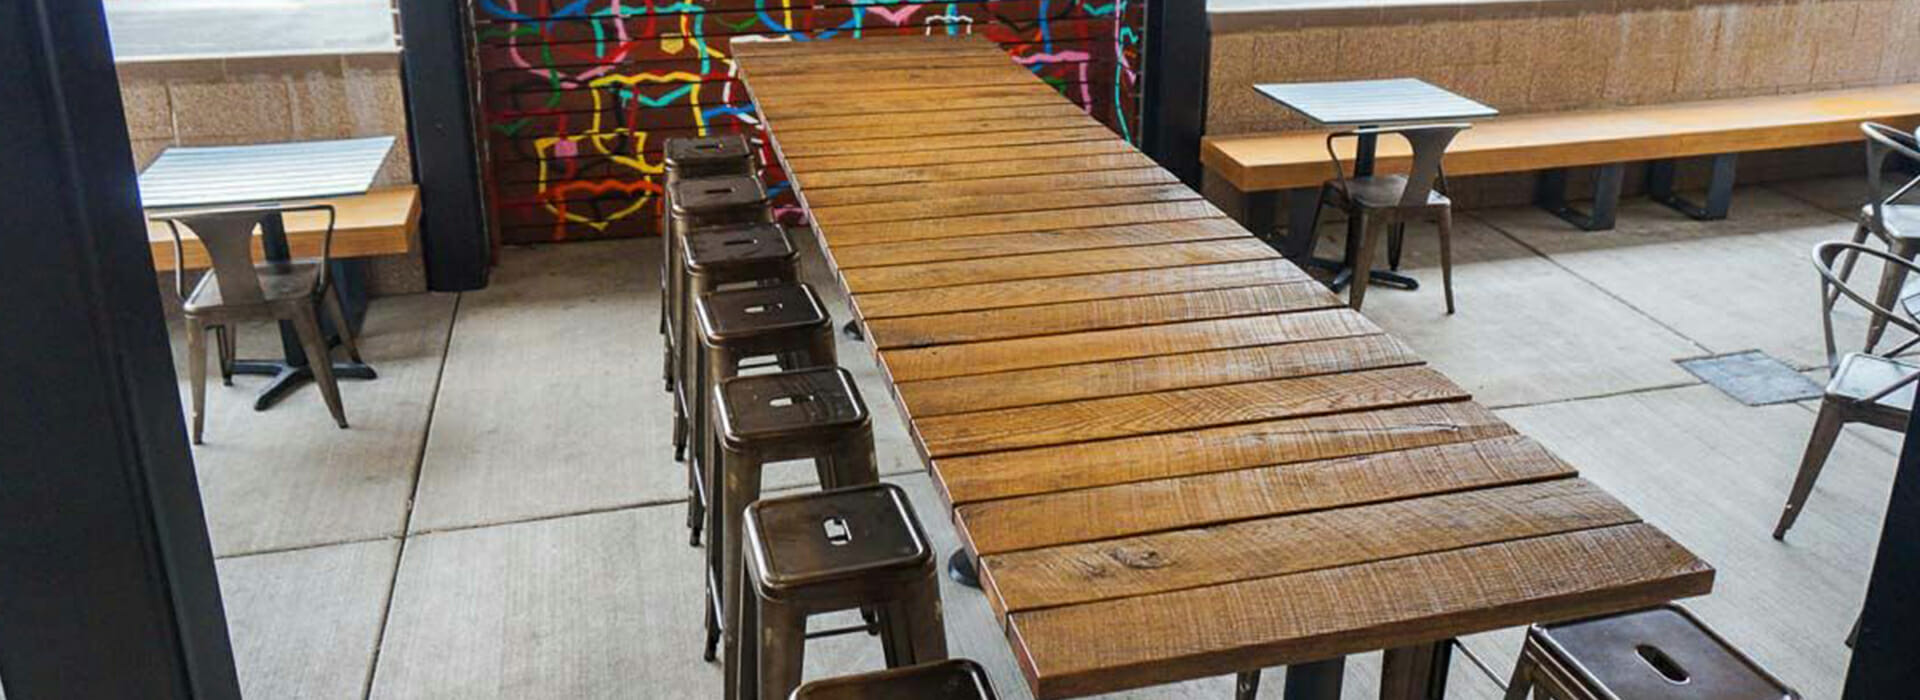 Reastaurant Tables Reclaimed Wood Restaurant Tables Viridian Wood